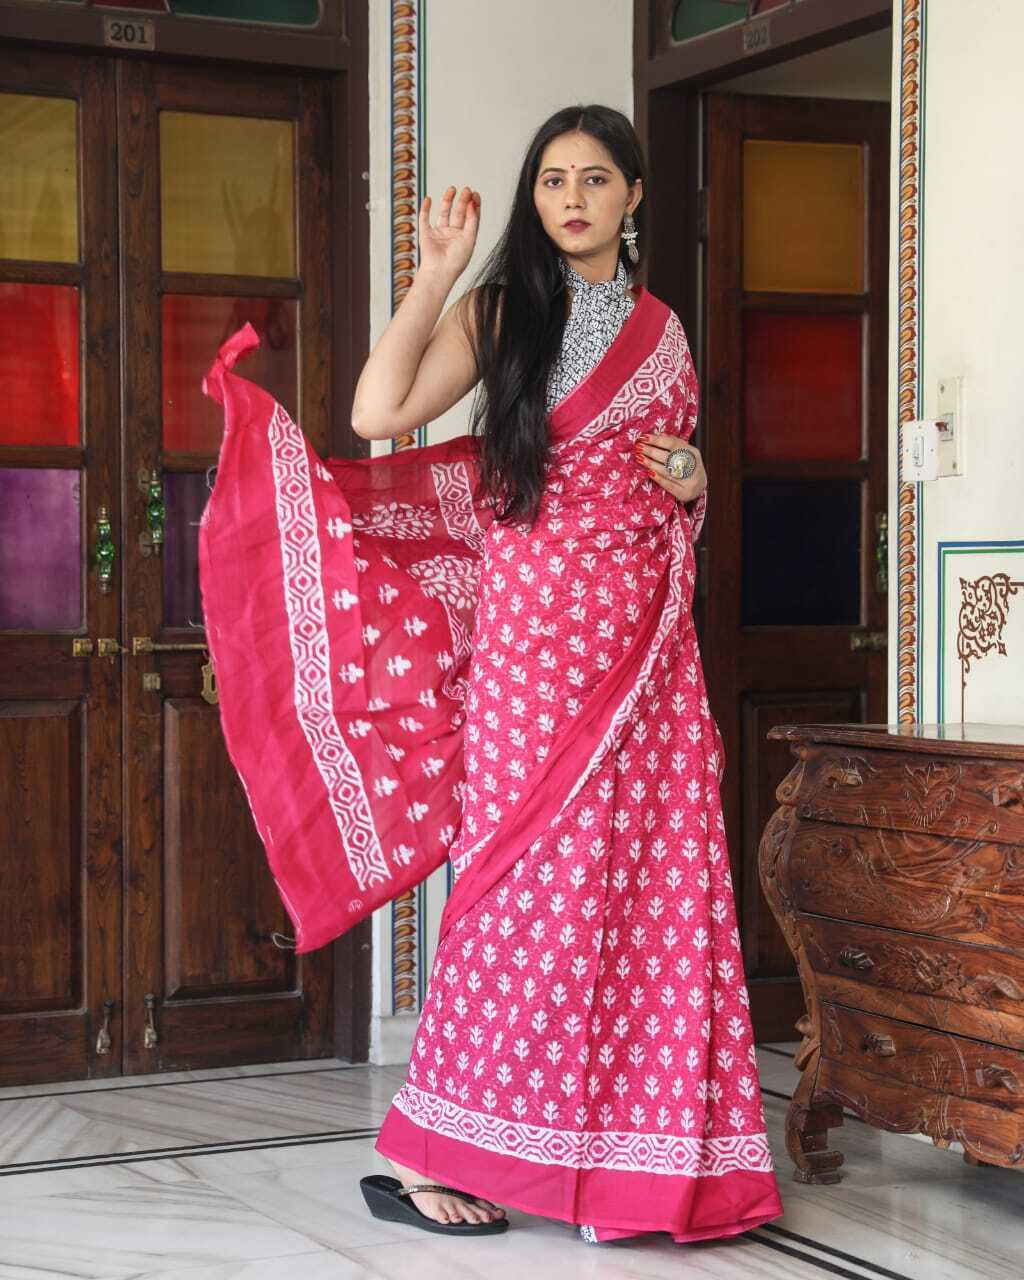 Jaipur Hand Printed Women Dress Pure Cotton Saree For Girl's With Blouse (Pink)